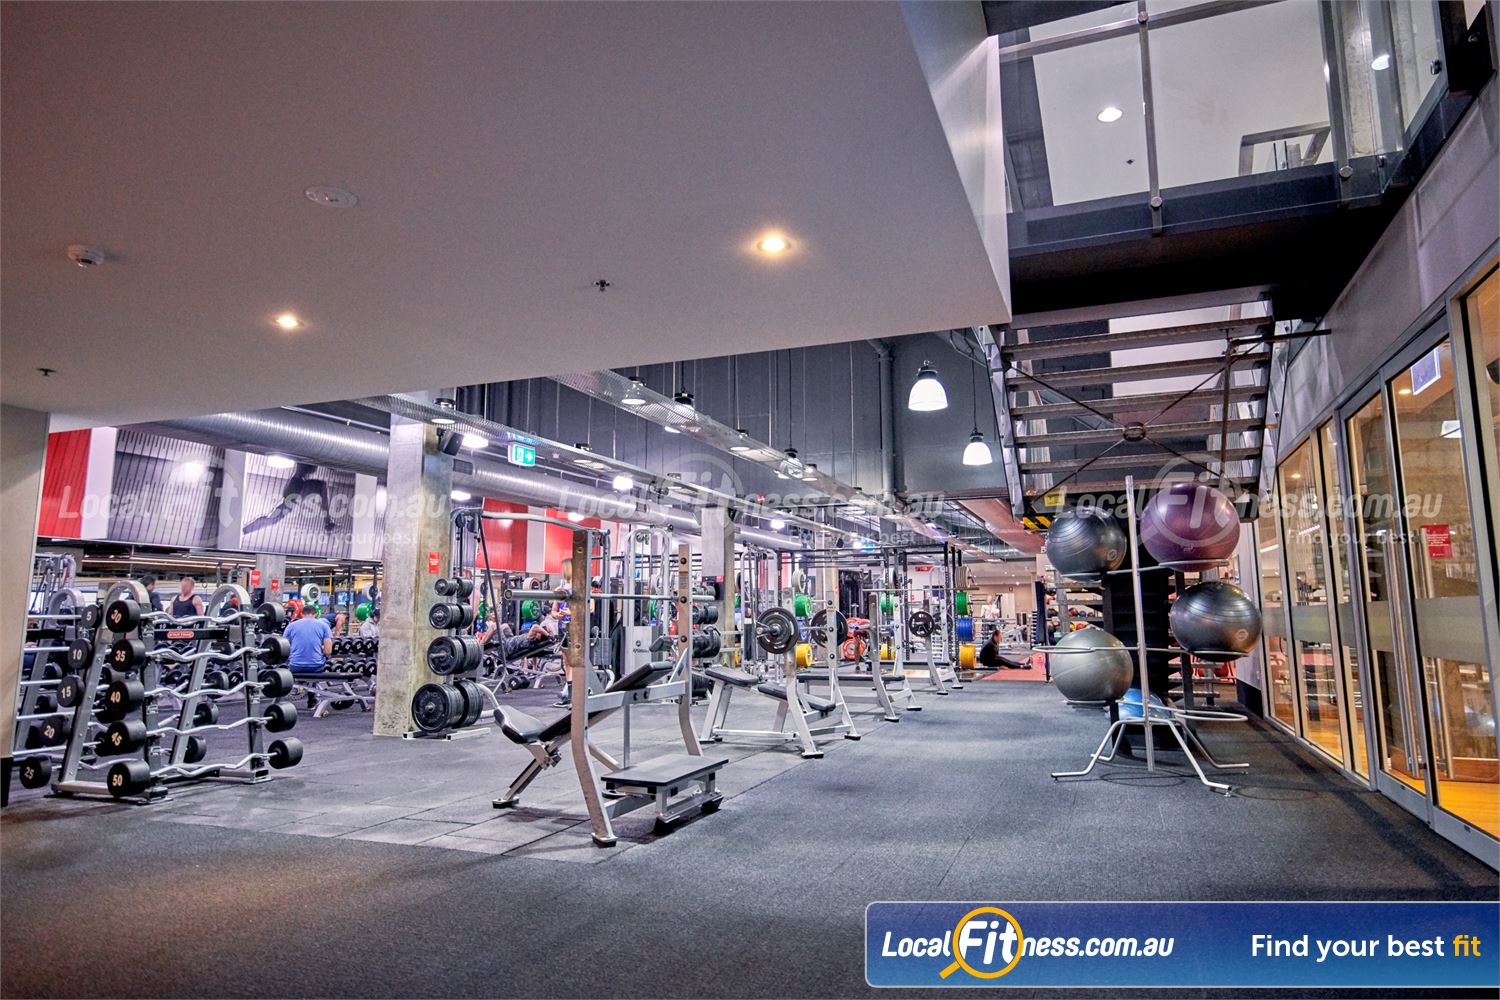 Fitness First Victoria Gardens Richmond Our Richmond gym includes a fully equipped free-weights area.